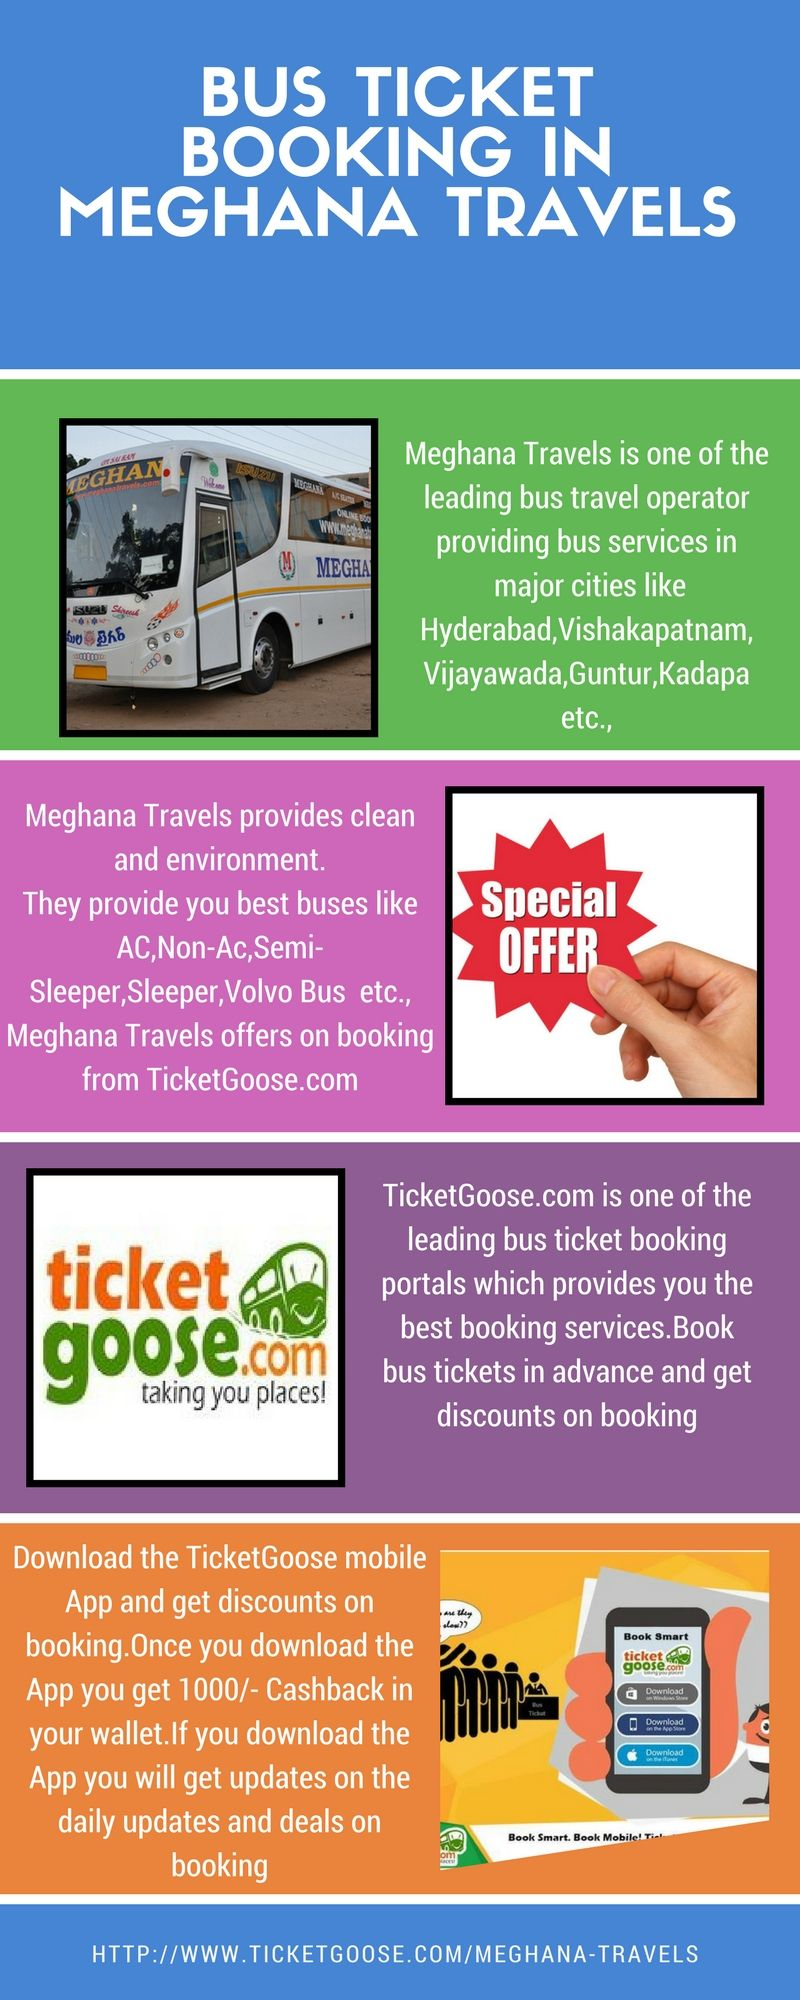 Meghana Travels Offers You The Best Comfortable Journey And